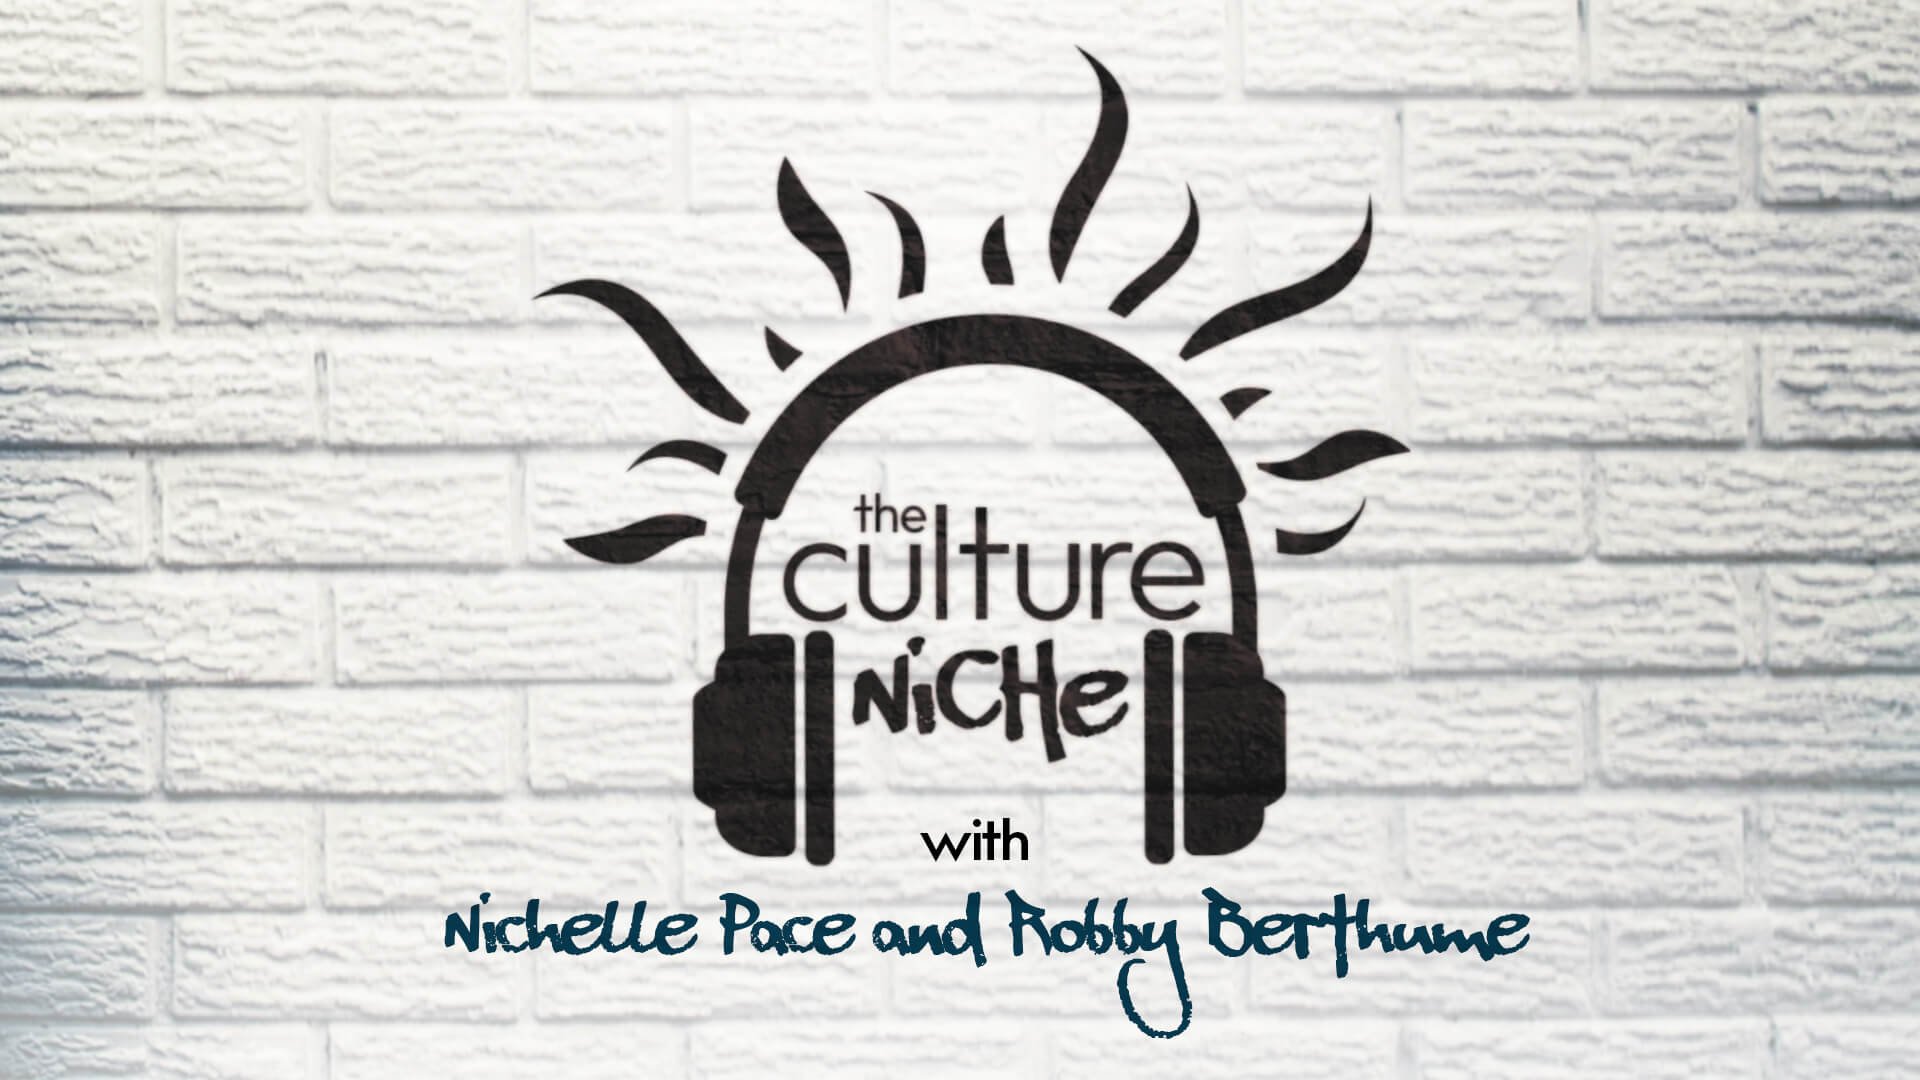 The Culture Niche with Nichelle Pace and Robby Berthume